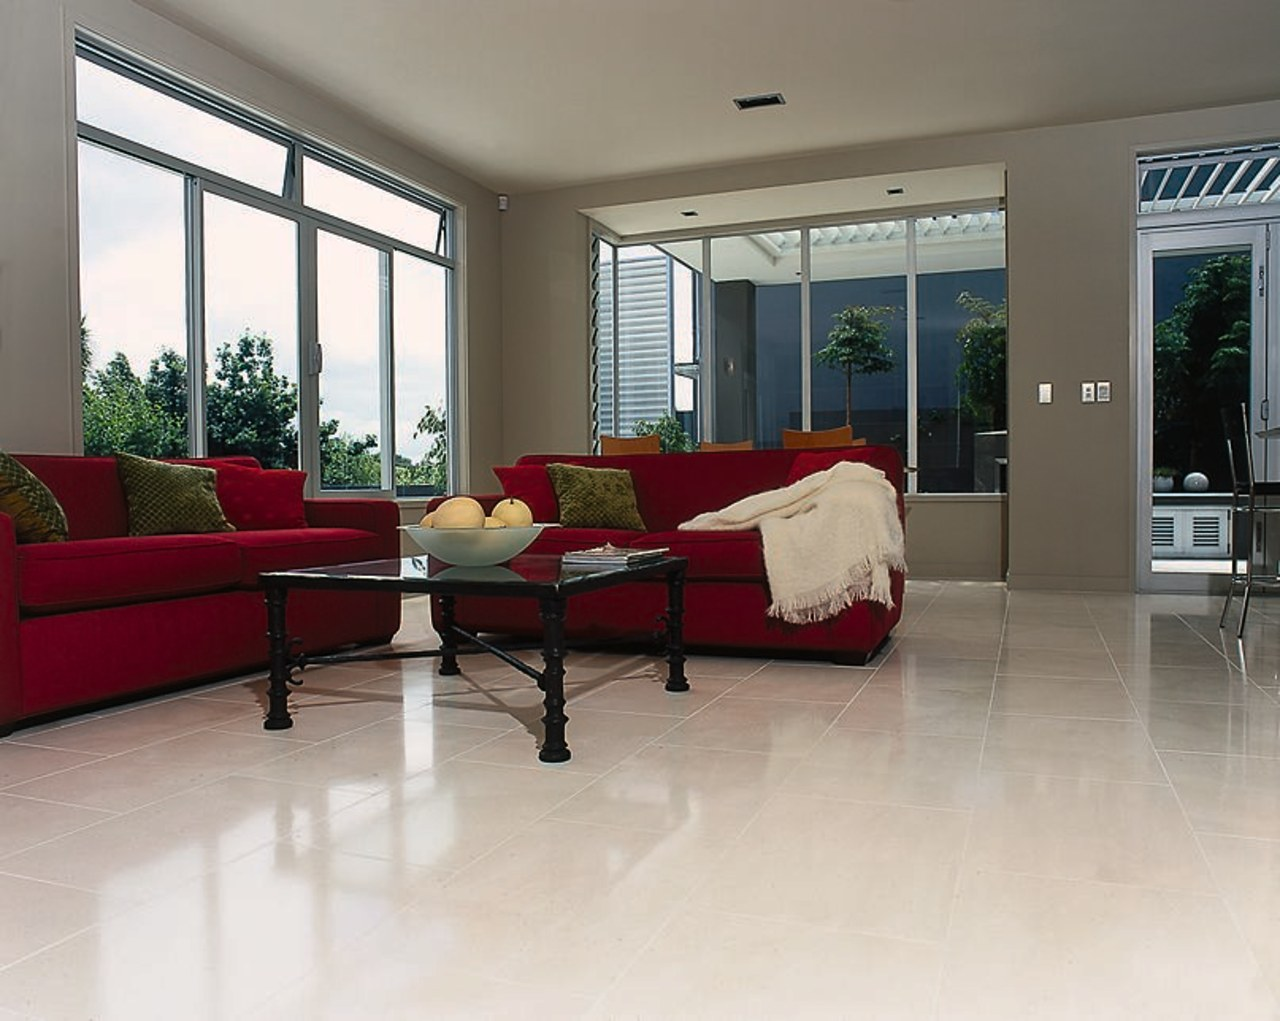 A lounge area with red sofas, red and floor, flooring, hardwood, home, house, interior design, laminate flooring, living room, property, real estate, room, window, wood, wood flooring, gray, white